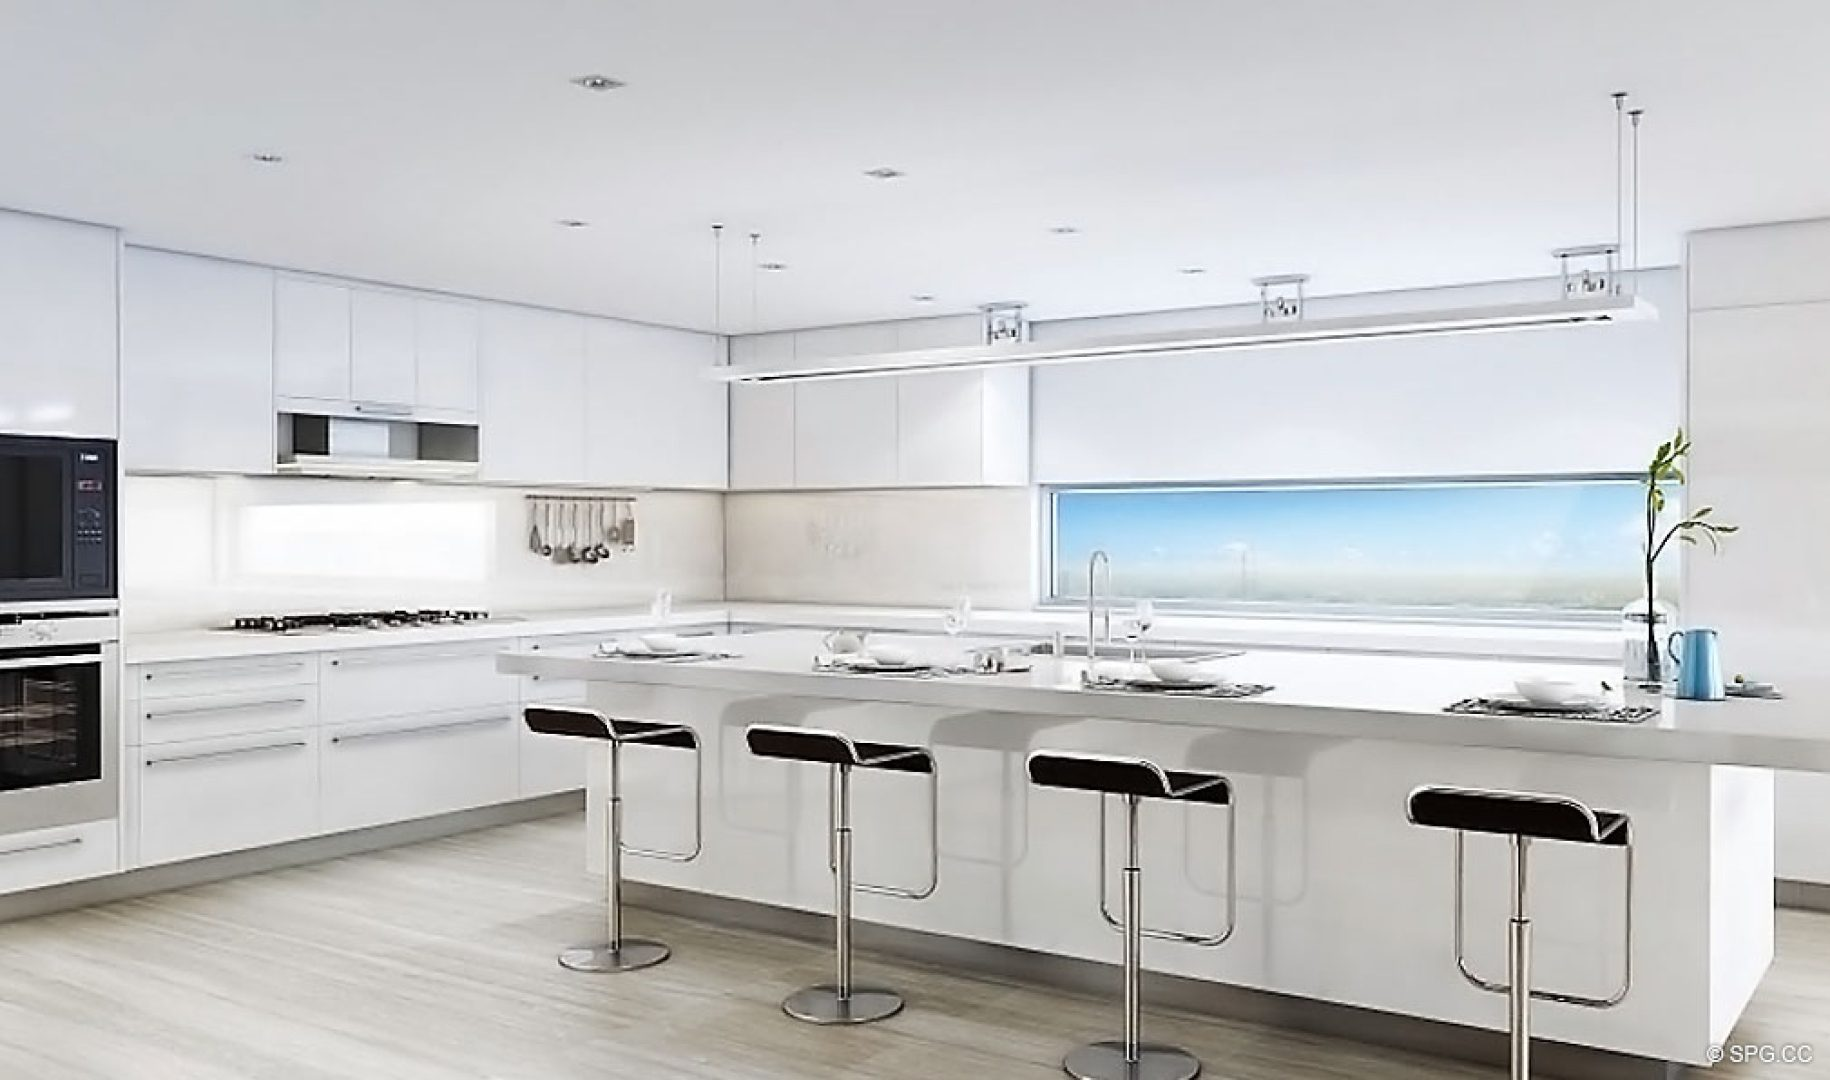 Gourmet Kitchens inside AquaLuna Las Olas, Luxury Waterfront Condos in Fort Lauderdale, Florida 33301